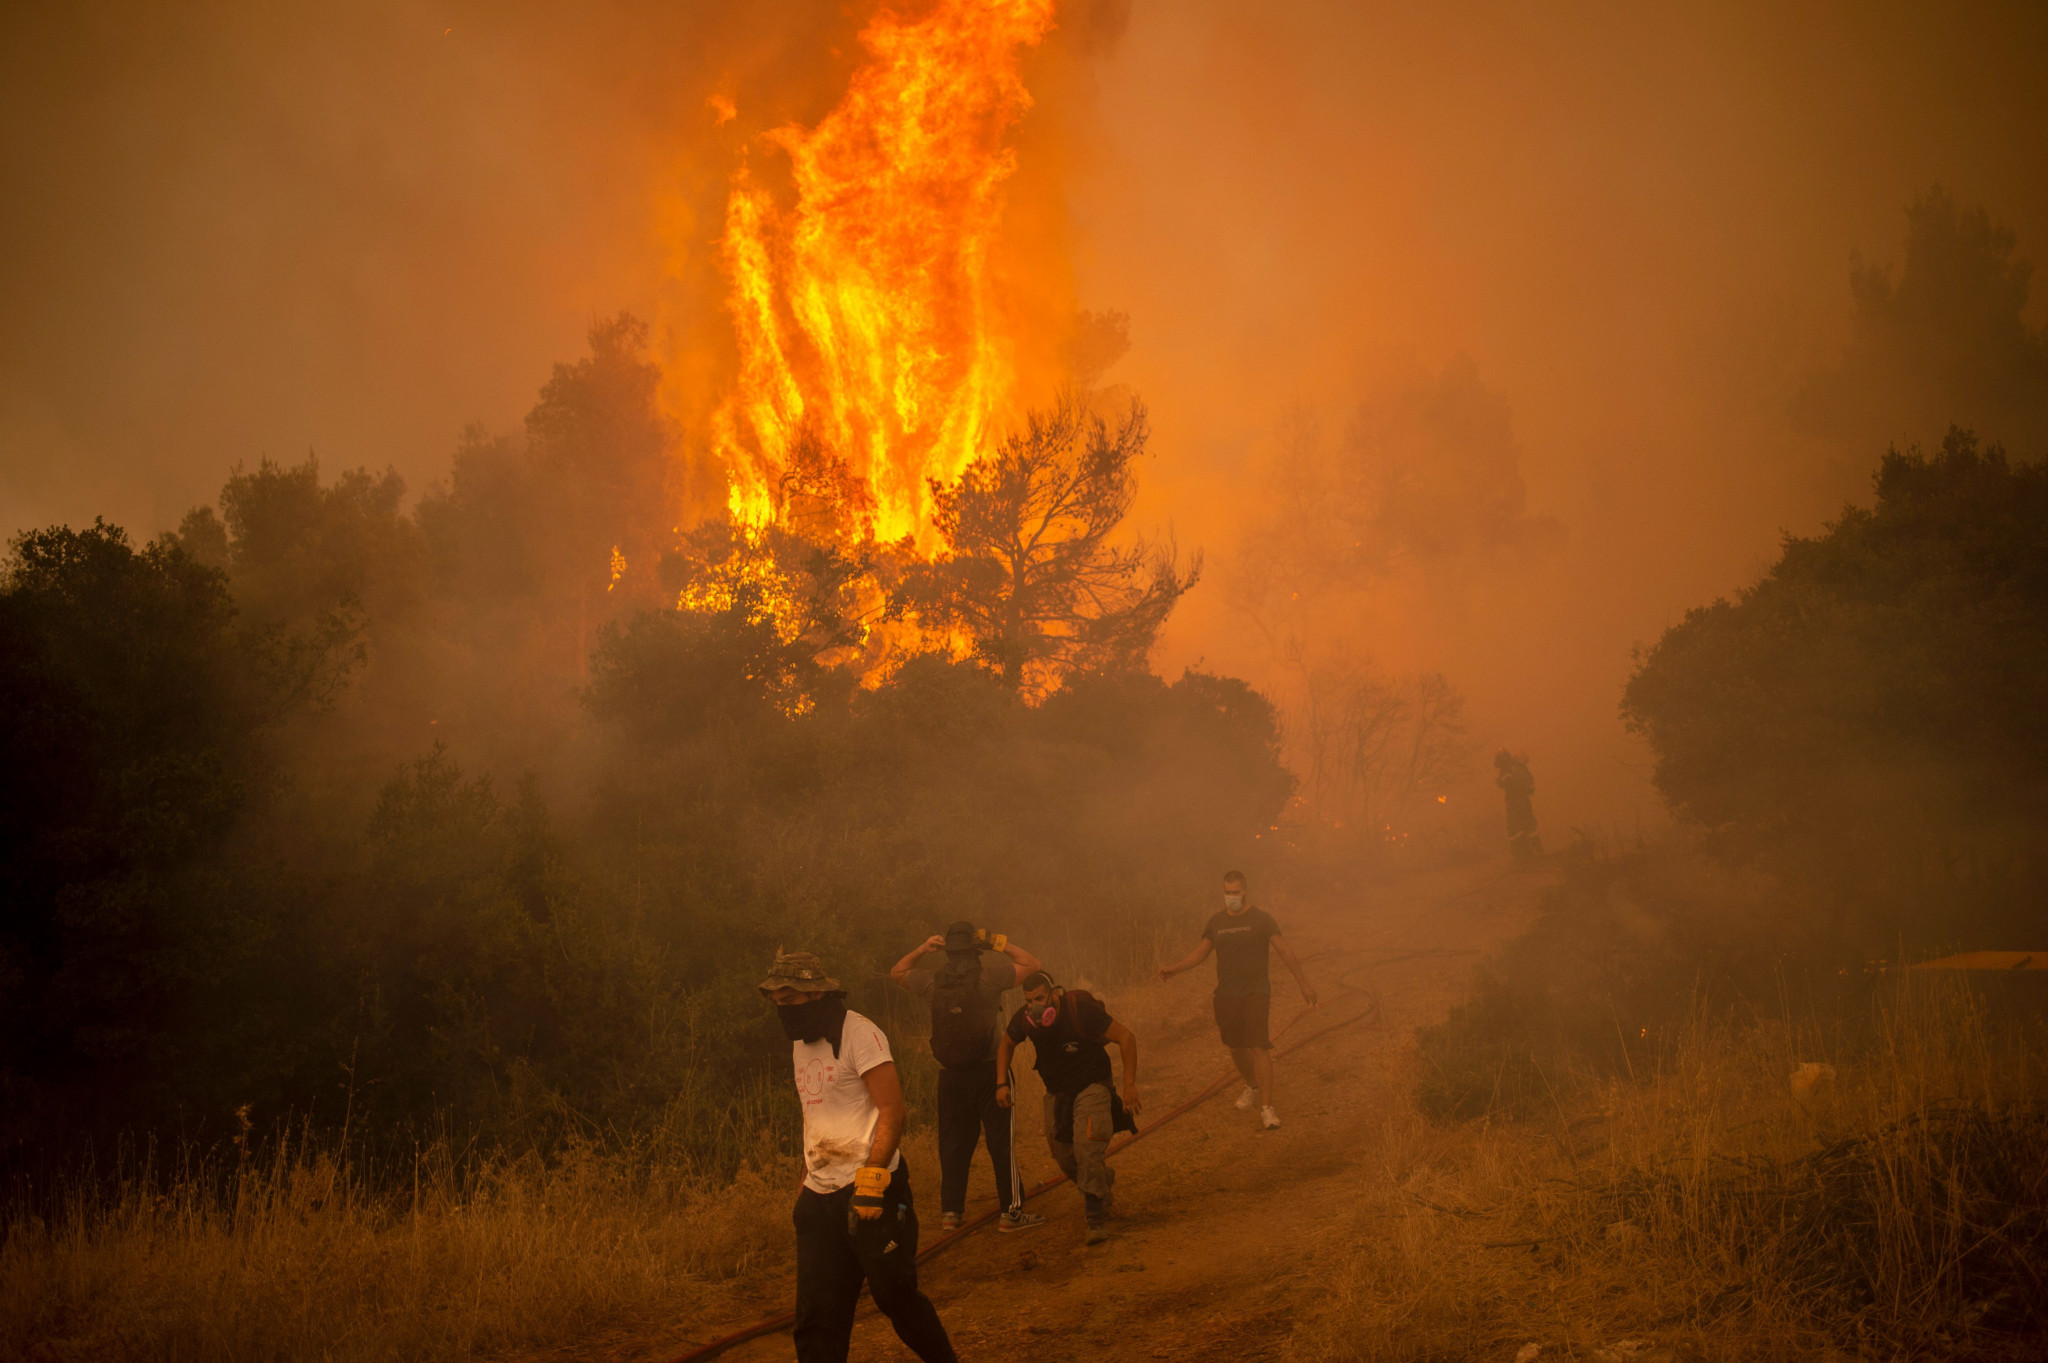 The wildfires that have raged across Greece have forced GAMMA to move the European MMA Championships from Lamia ©Getty Images